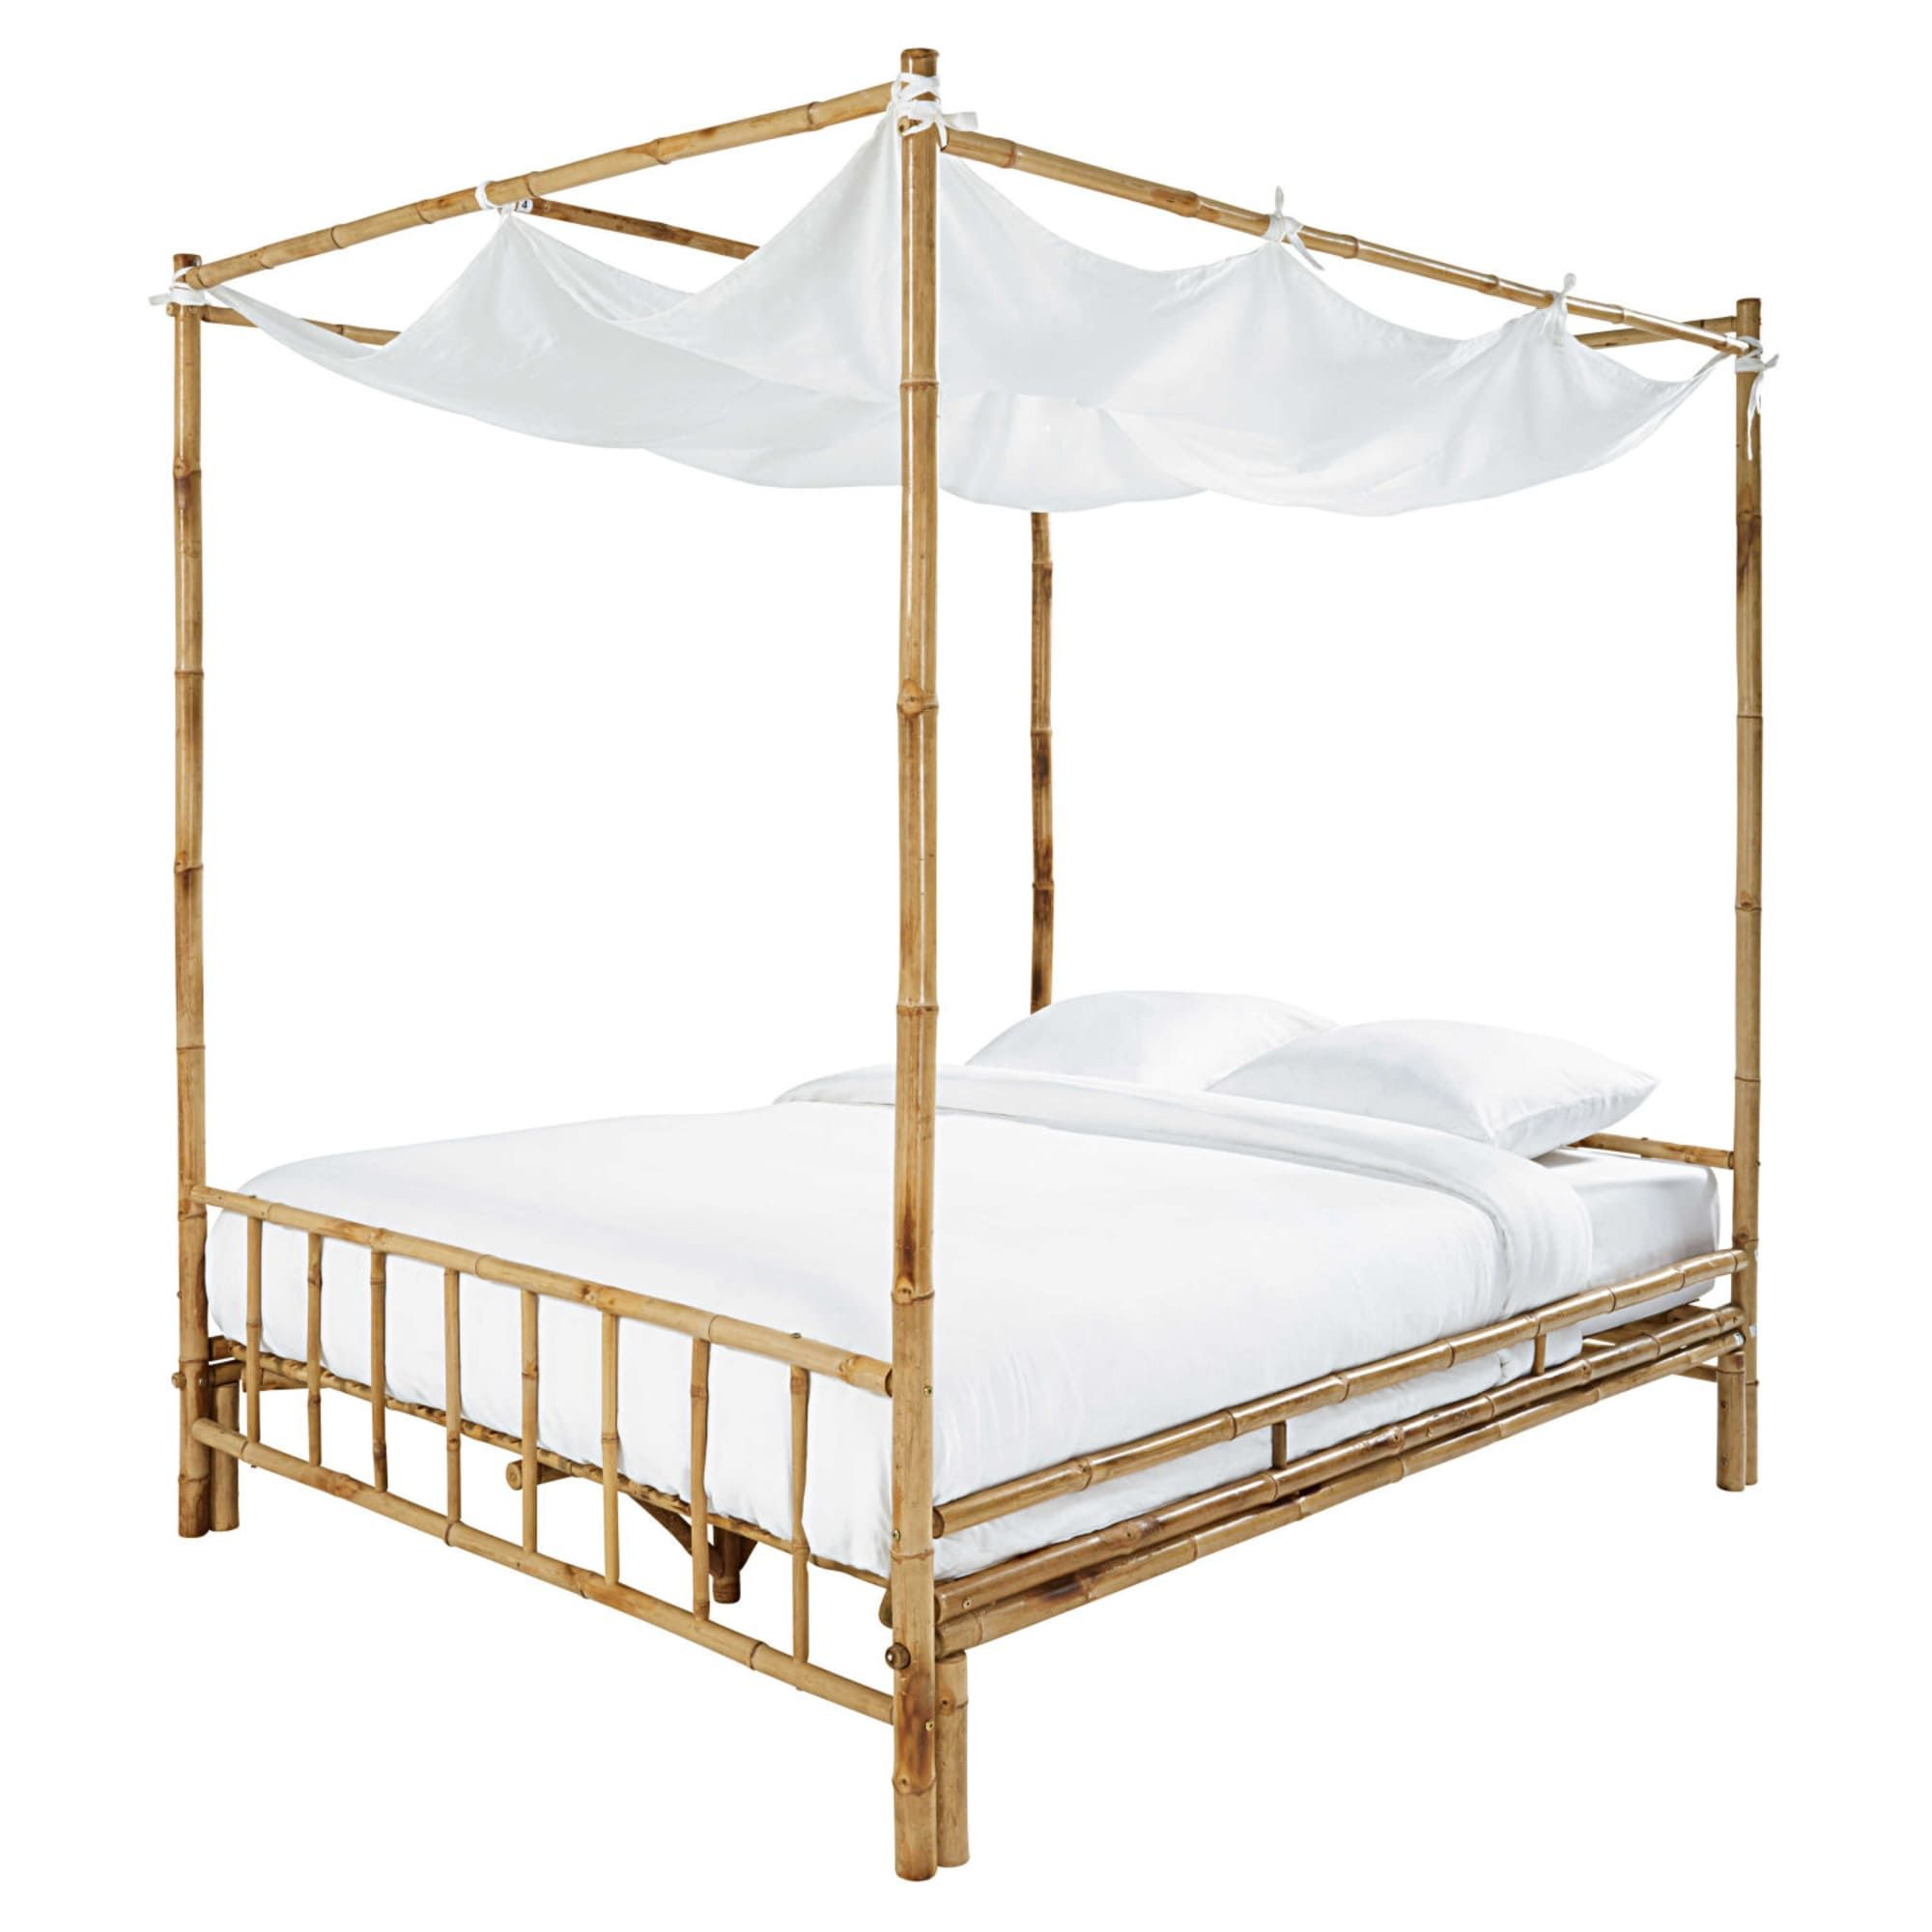 Bamboo And White Fabric 160 X 200 Four Poster Bed Coconut Maisons Du Monde Four Poster Bed Four Poster Bamboo Sheets Bedding